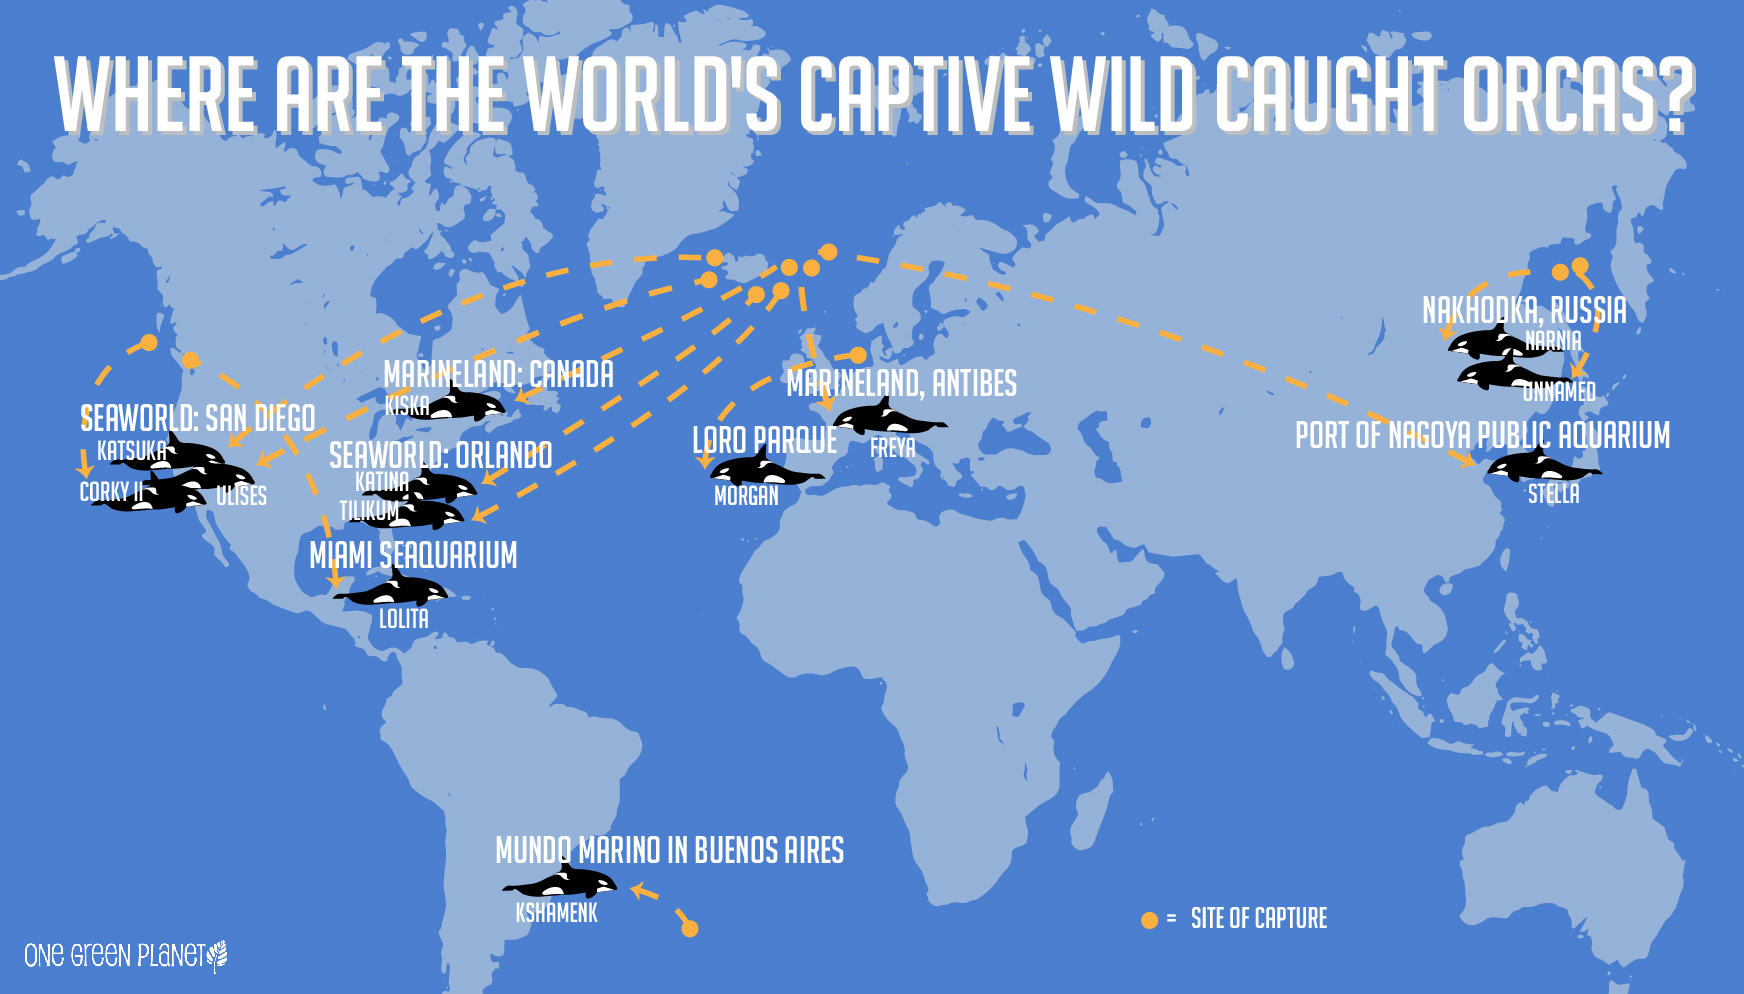 Where Are the World's Wild Caught Orca Whales Imprisoned?